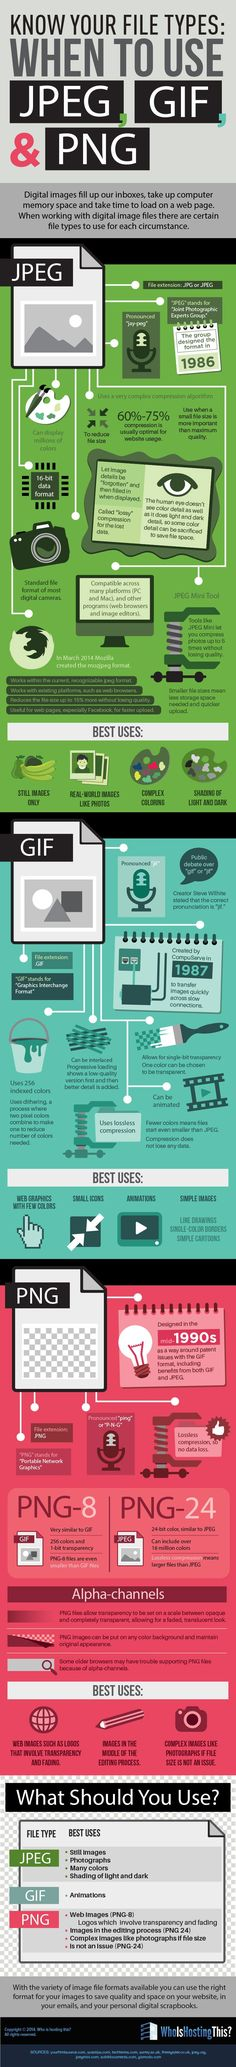 Handy infographic that shows you when to use certain file types: JPEG, GIF & PNG